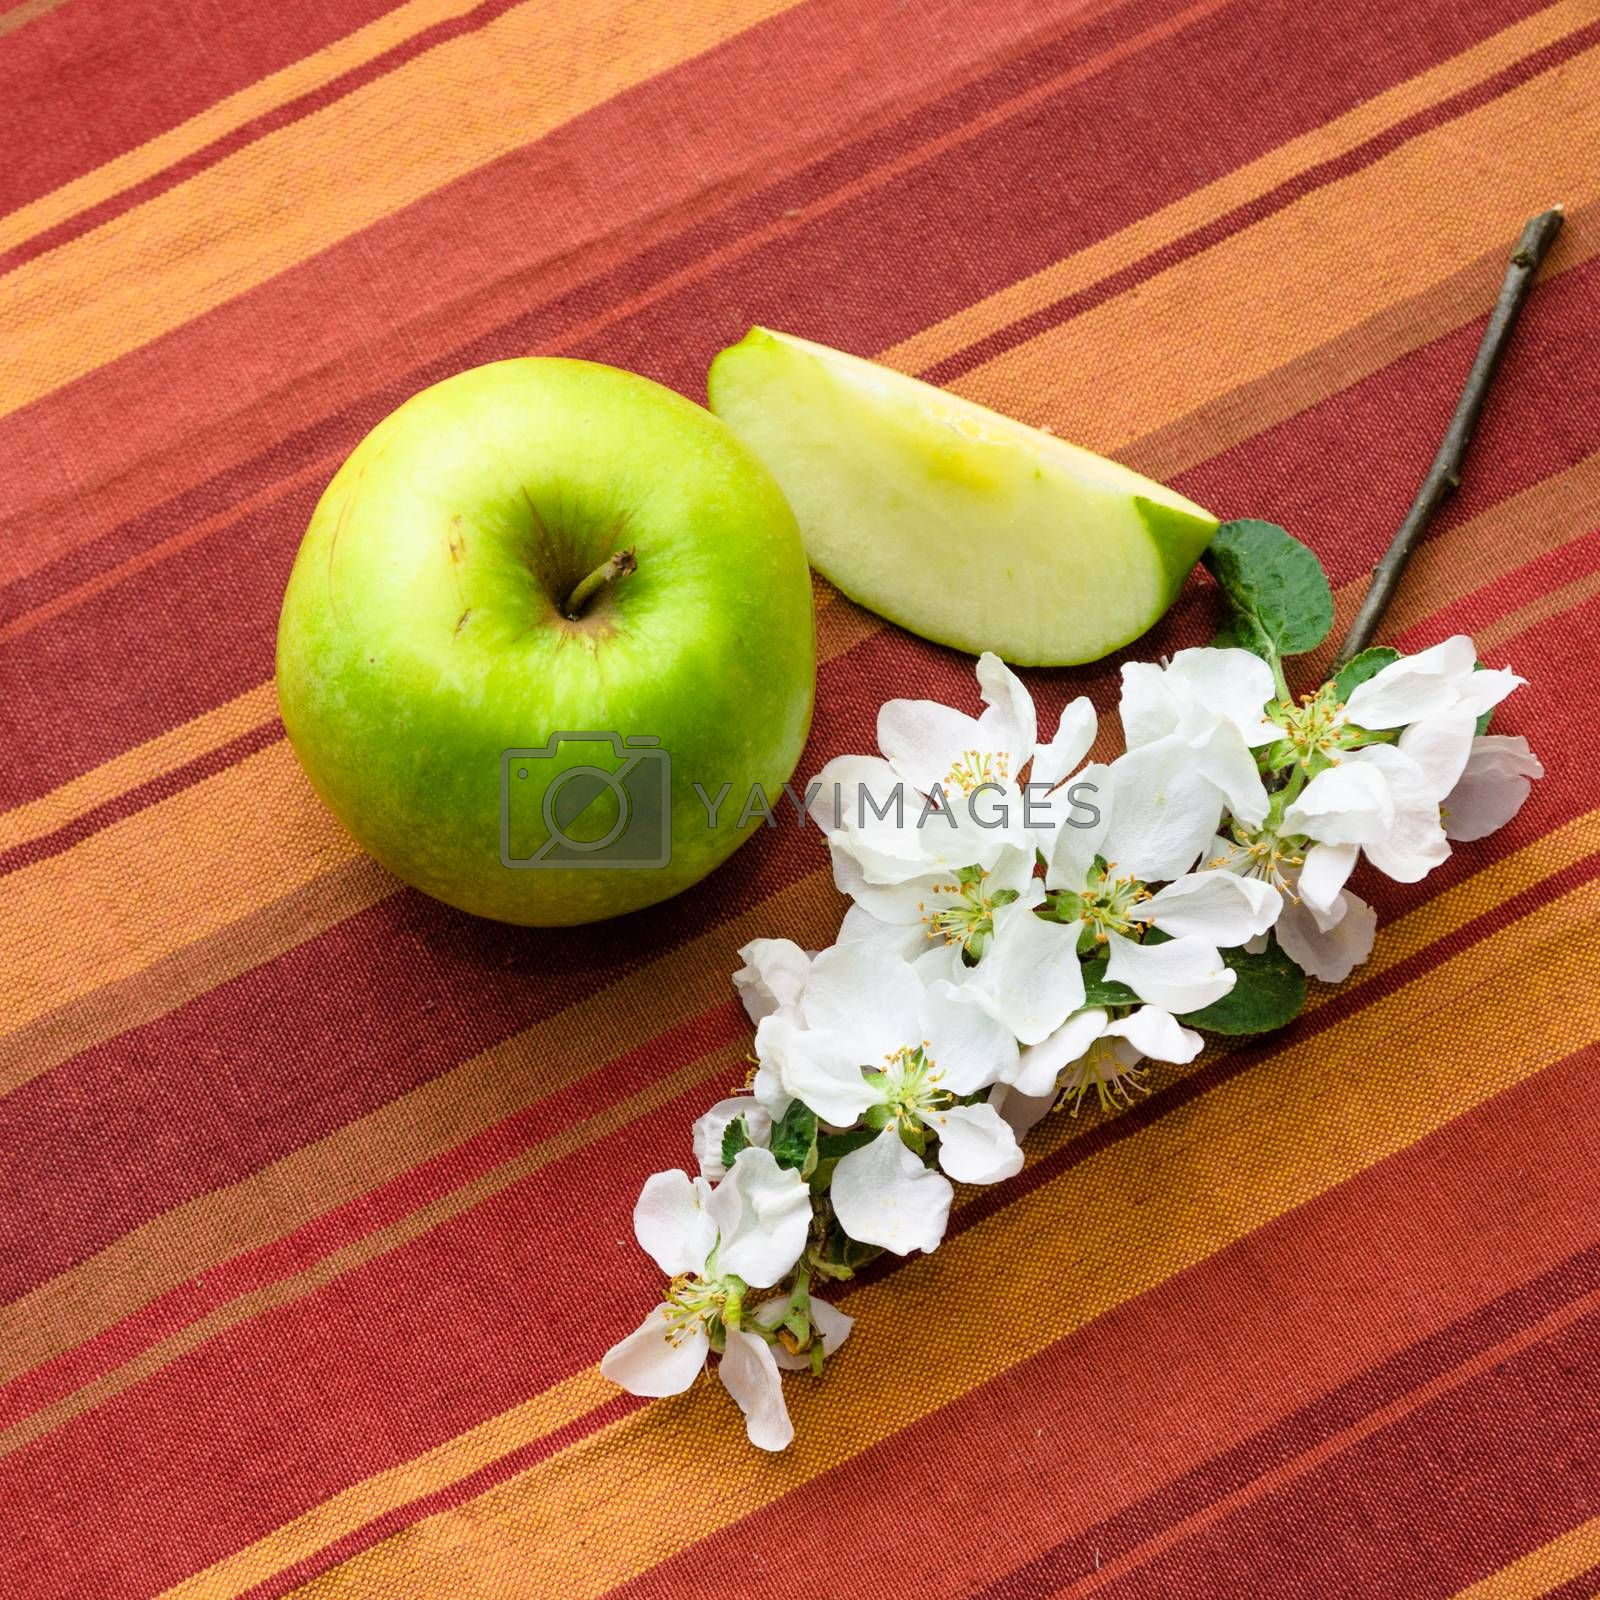 Green apple with a branch close-up